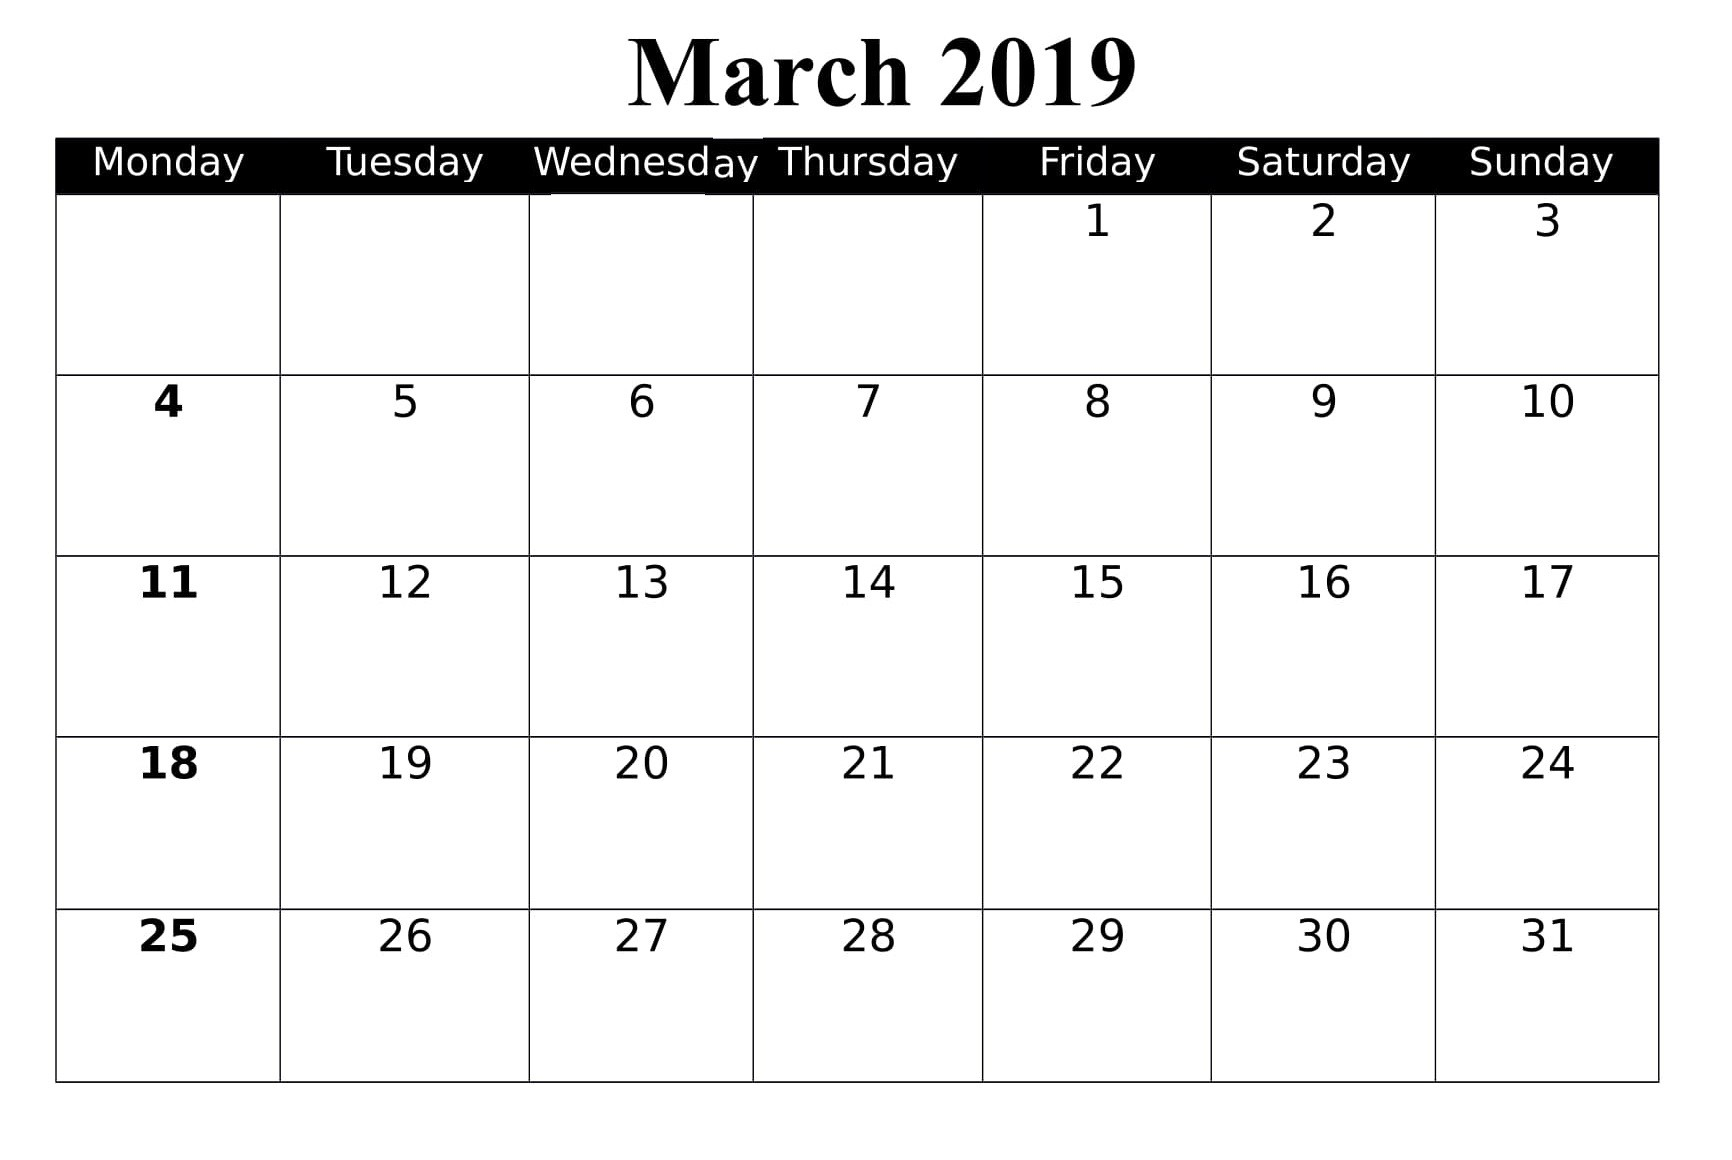 March Calendar 2019 Más Recientes March 2019 Calendar Printable Chart – Best Reviews 2019 Of March Calendar 2019 Más Actual Odia Calendar 2019 with March Odishain